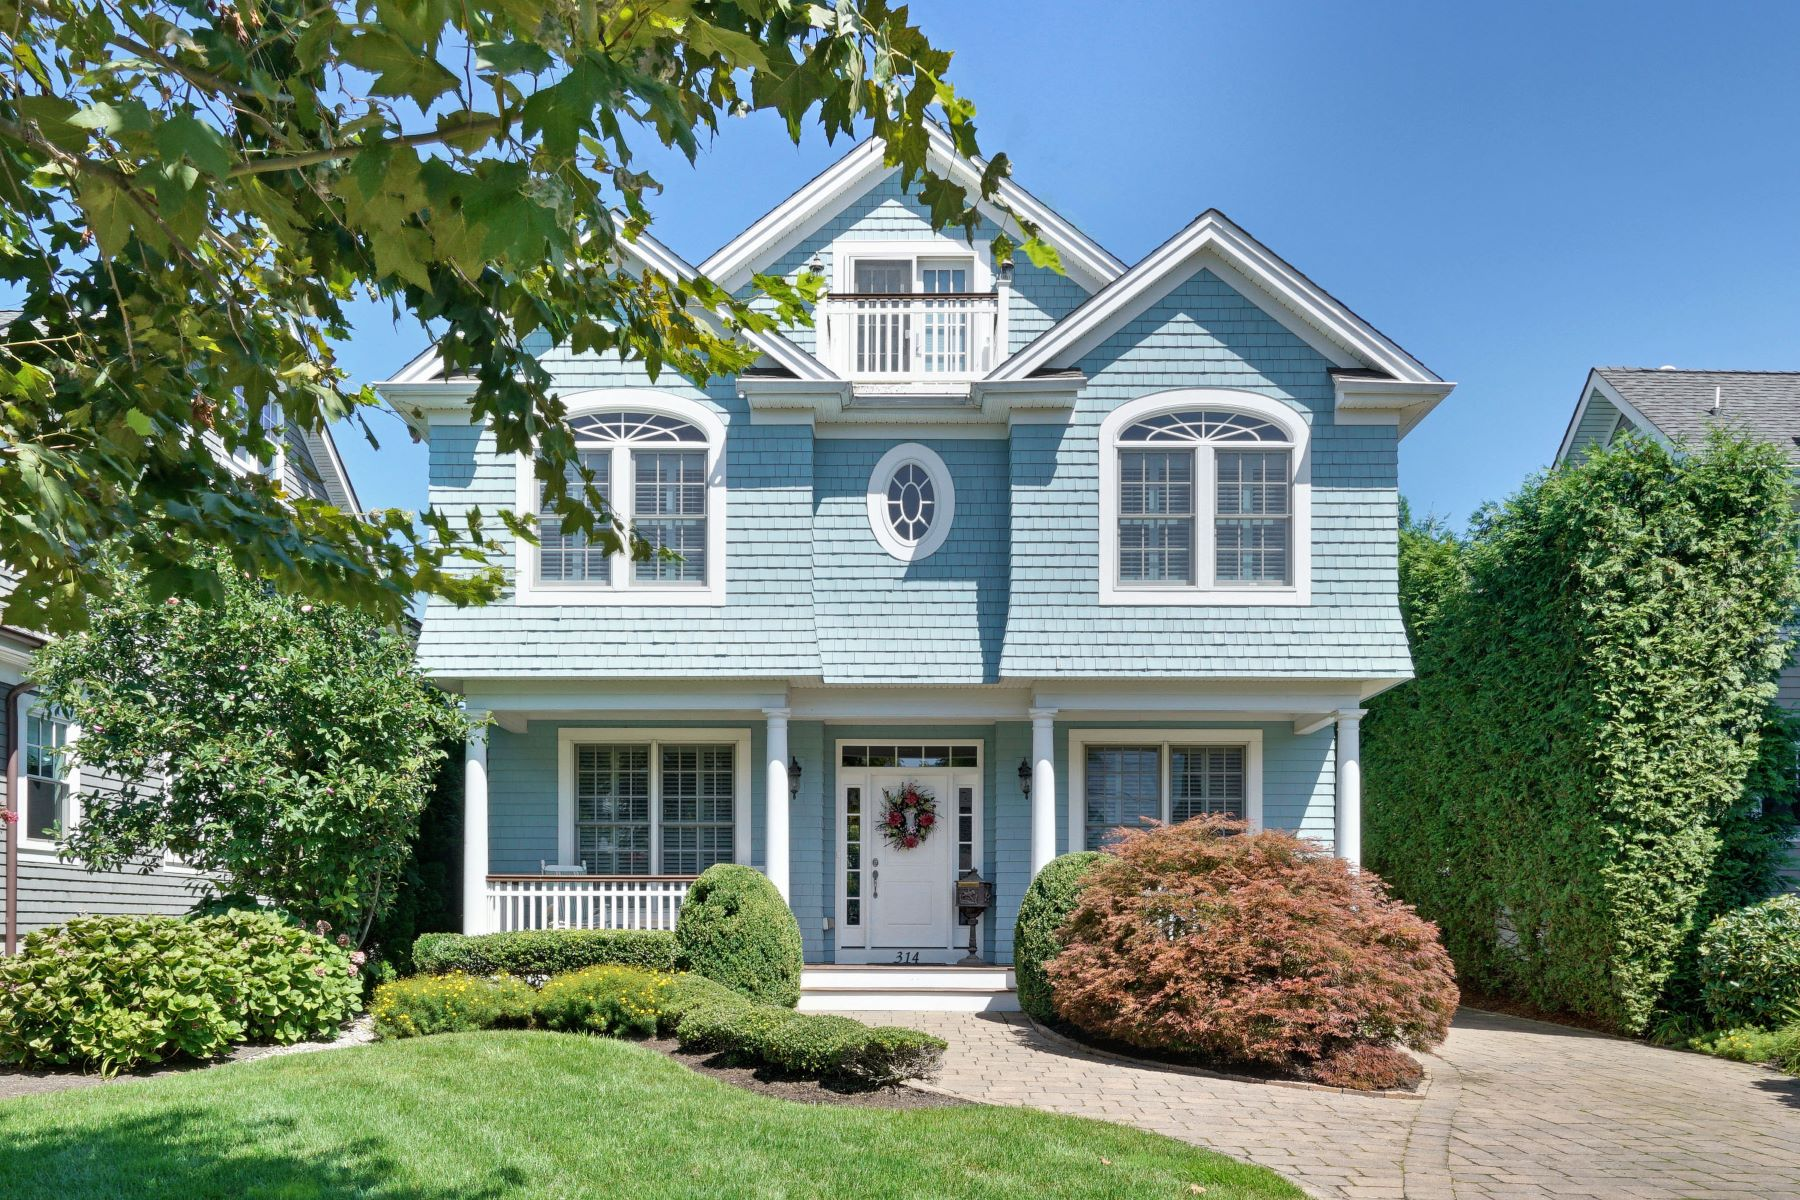 Single Family Homes for Sale at Stunning Custom Home 314 Jersey Avenue Spring Lake, New Jersey 07762 United States